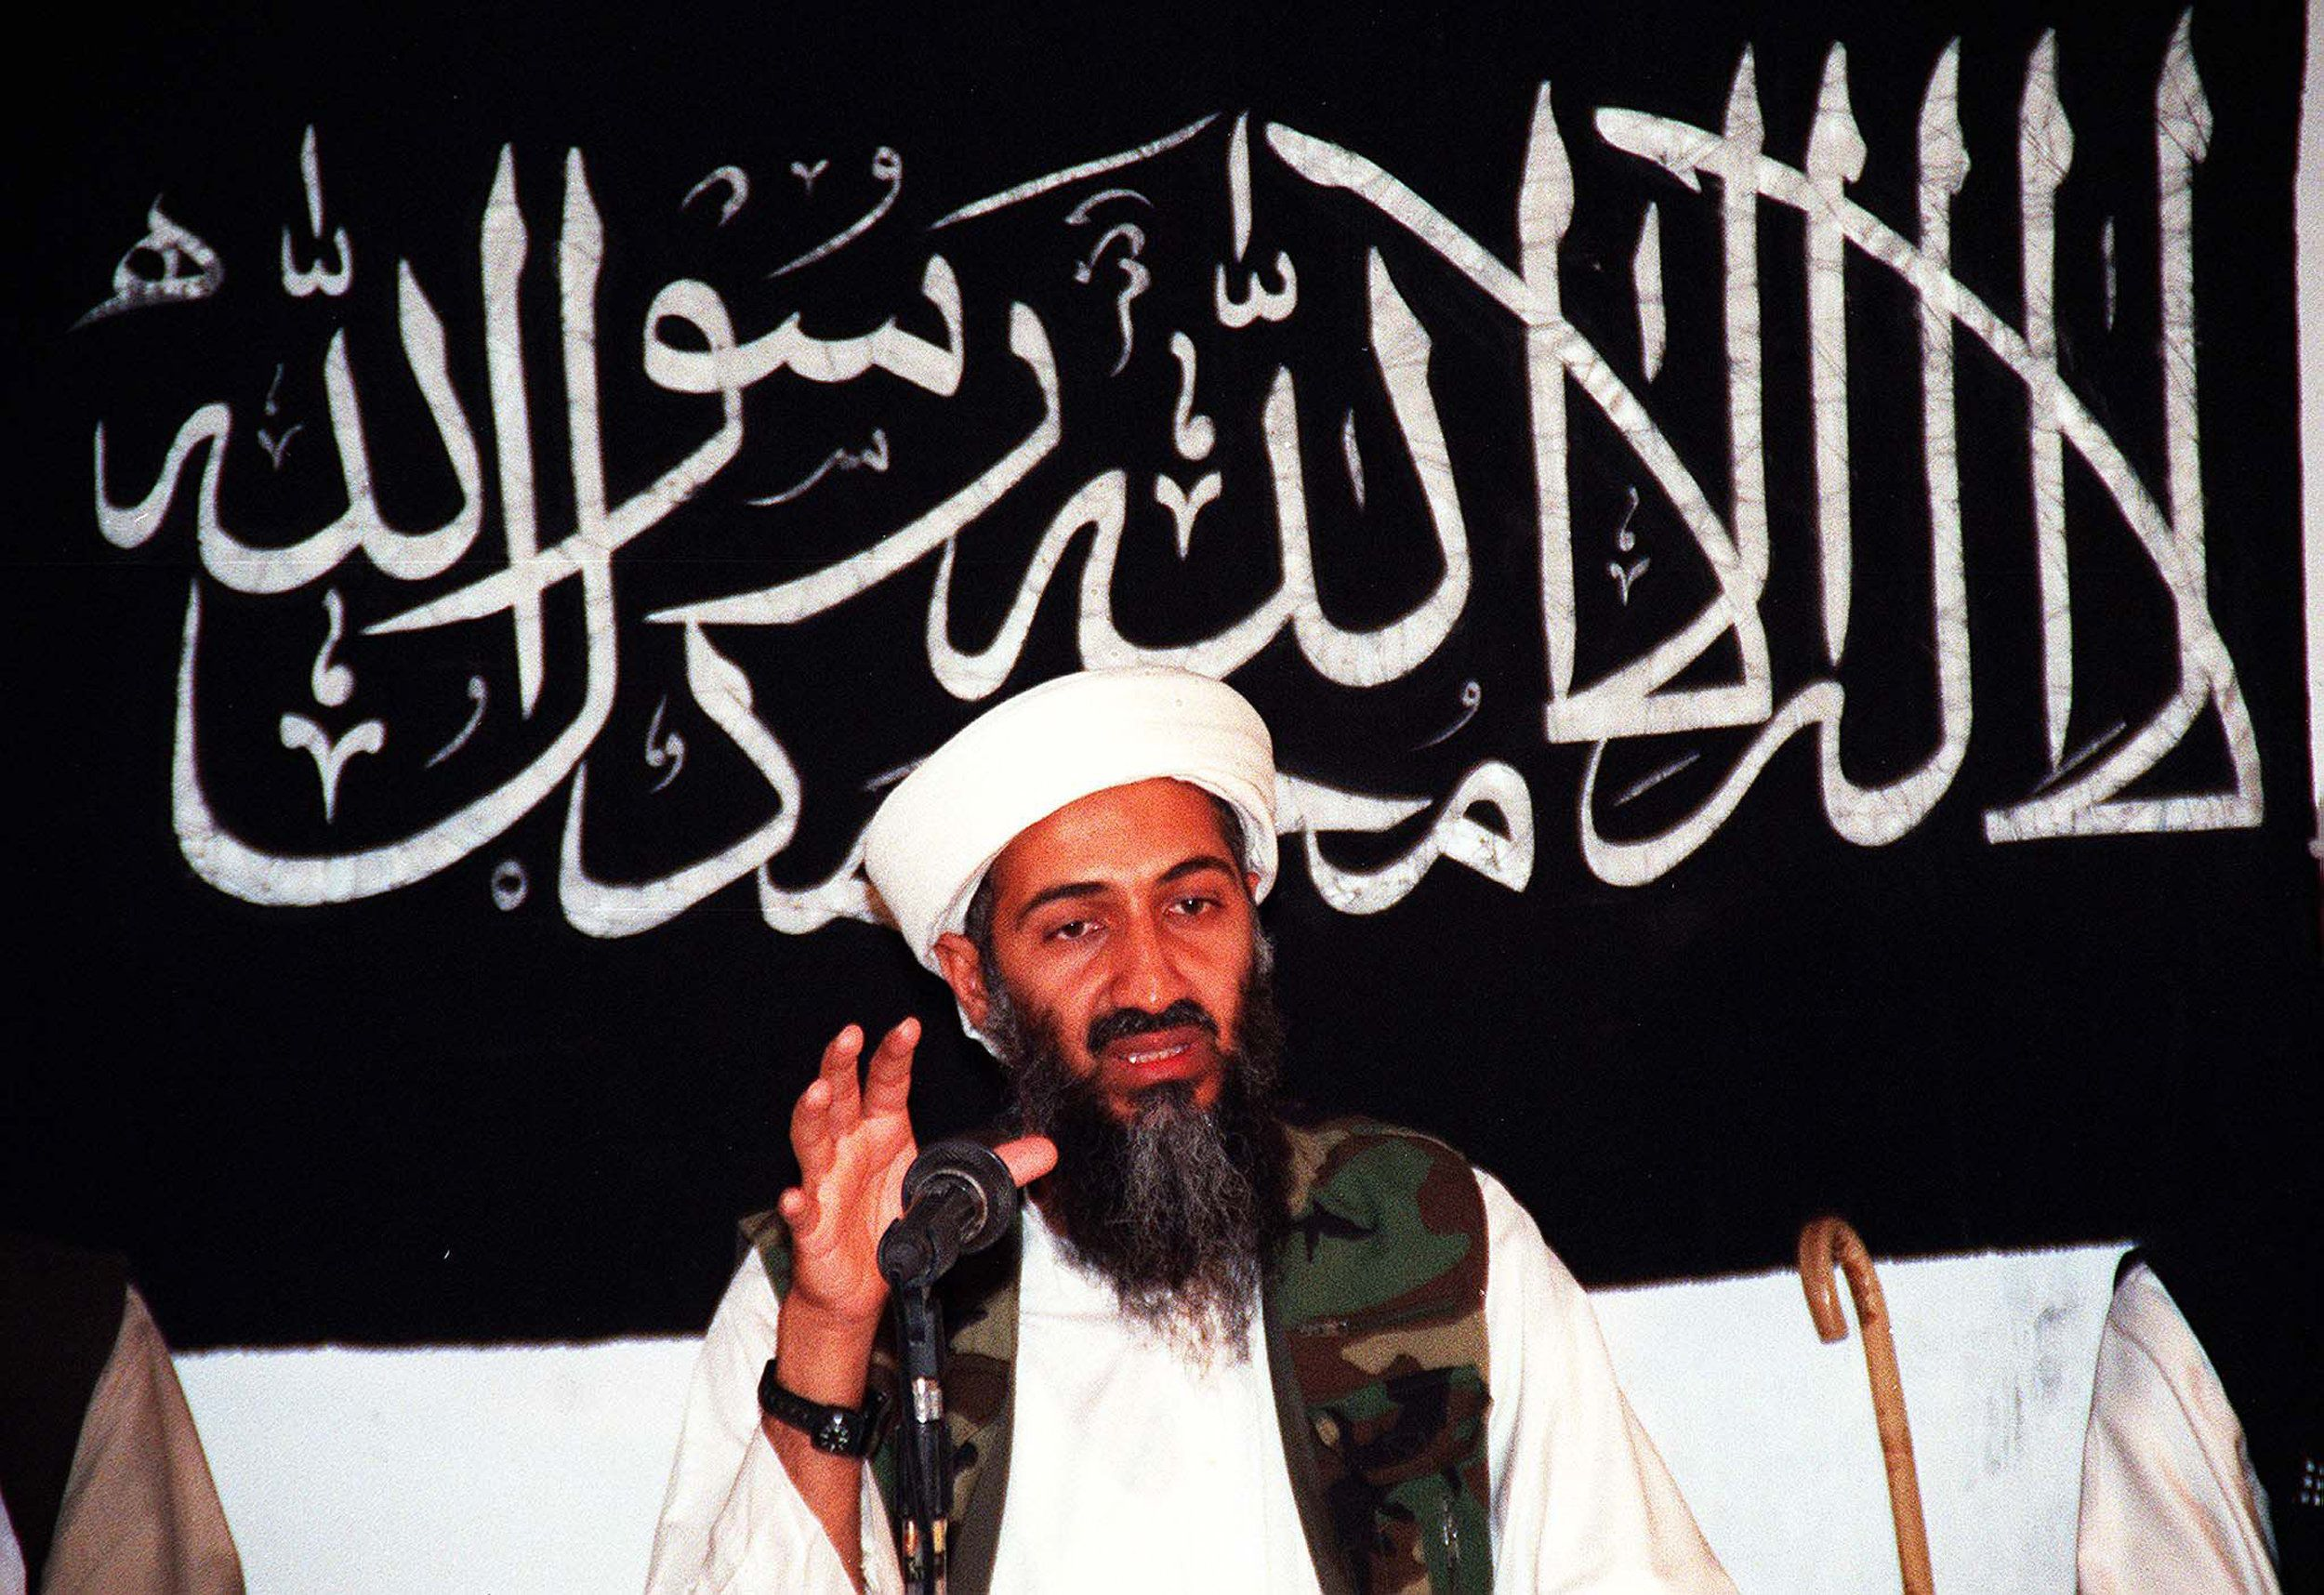 (FILES) This undated file picture shows Saudi dissident Osama bin Ladin speaking at an undisclosed place inside Afghanistan. Al-Qaeda mastermind Osama bin Laden was killed late on May 1, 2011 in a firefight with covert US forces deep inside Pakistan, prompting President Barack Obama to declare 'justice has been done' a decade after the September 11 attacks.   AFP PHOTO / FILES (Photo credit should read STR/AFP/Getty Images)